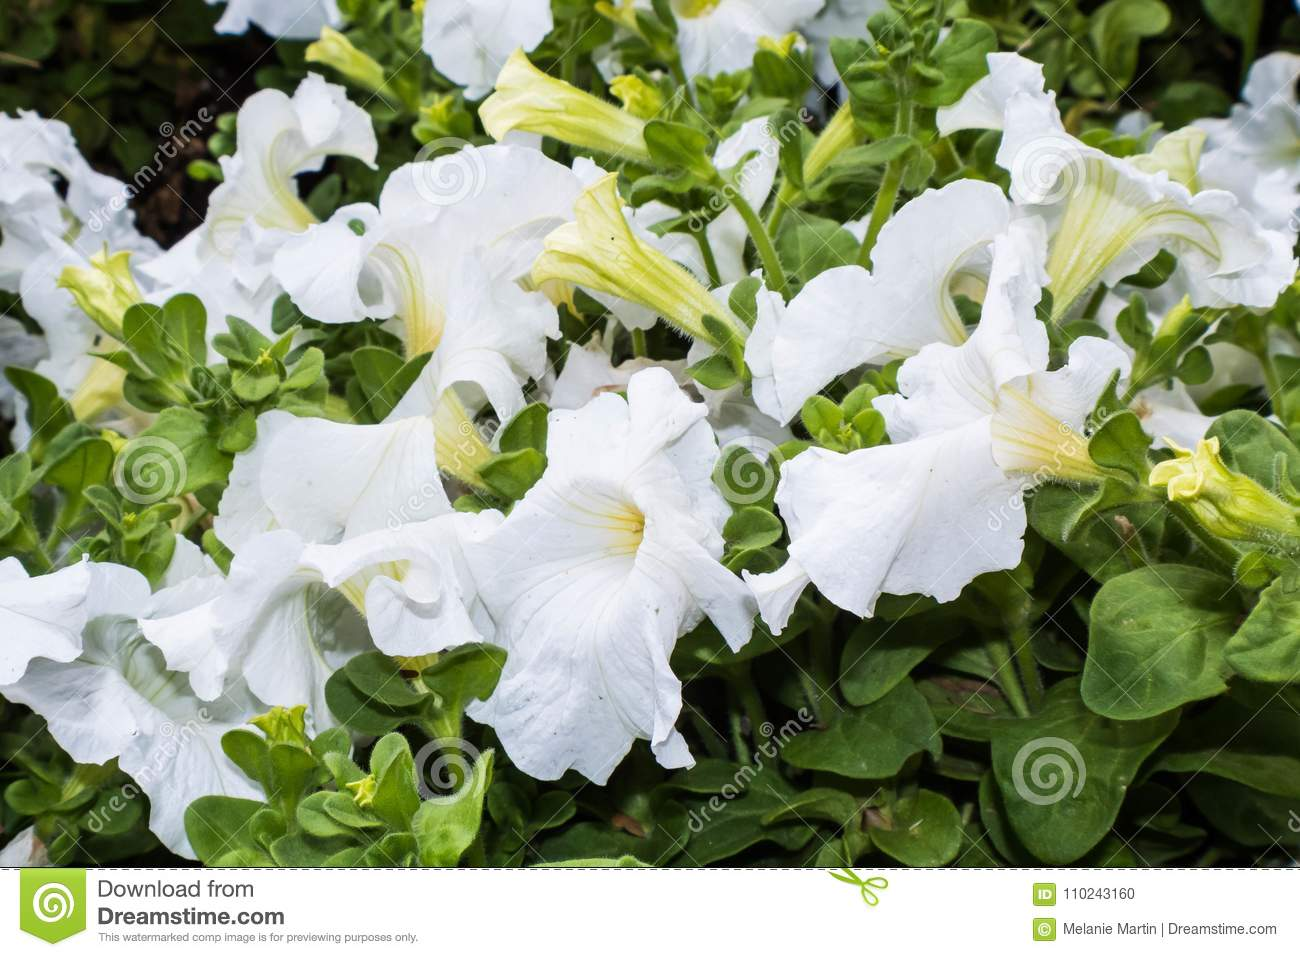 Bright white trumpet flowers with green leaves